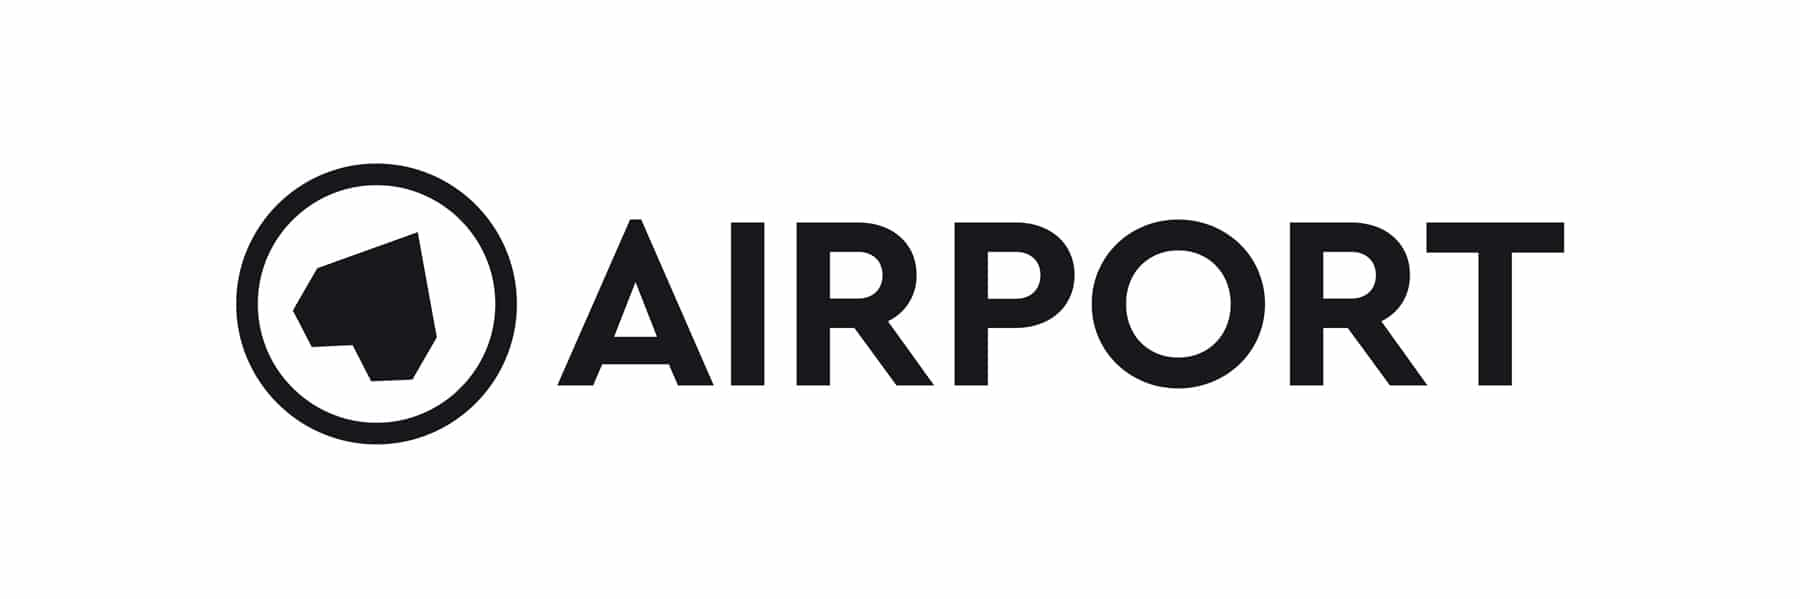 Club Airport Würzburg Logo Design